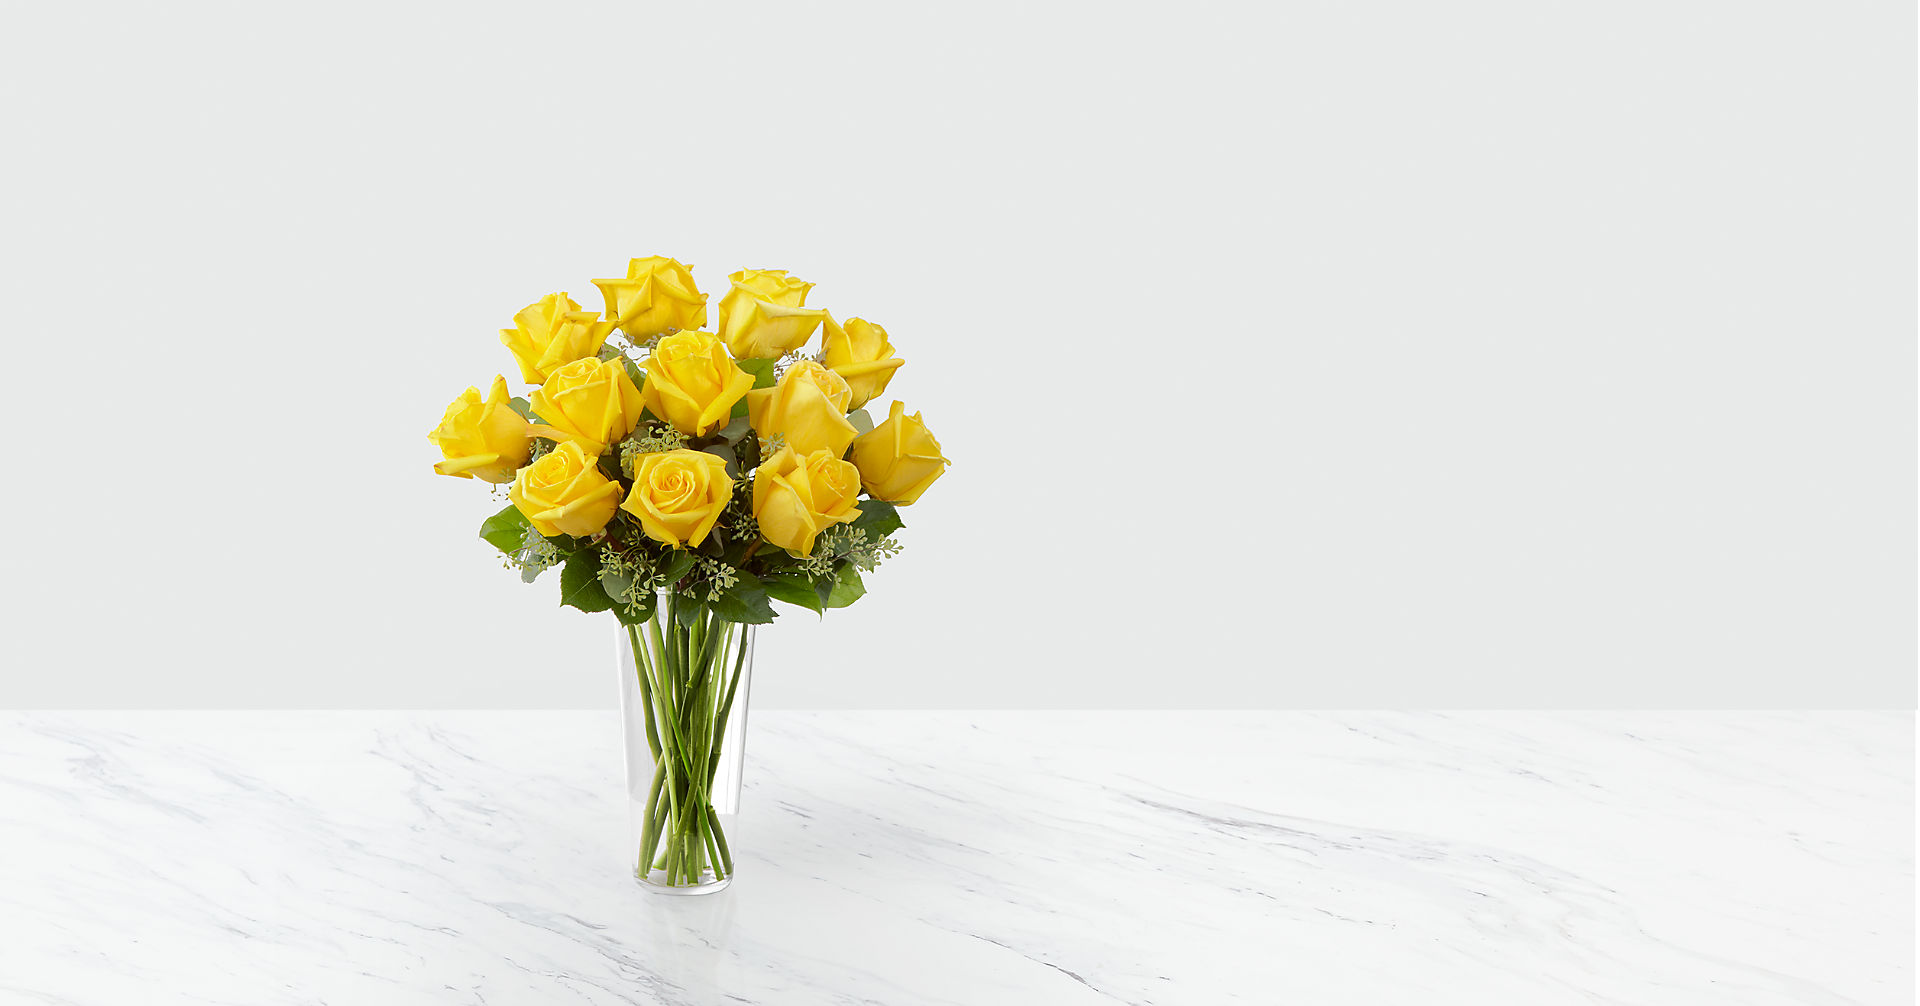 The Yellow Rose Bouquet - VASE INCLUDED - Image 1 Of 2